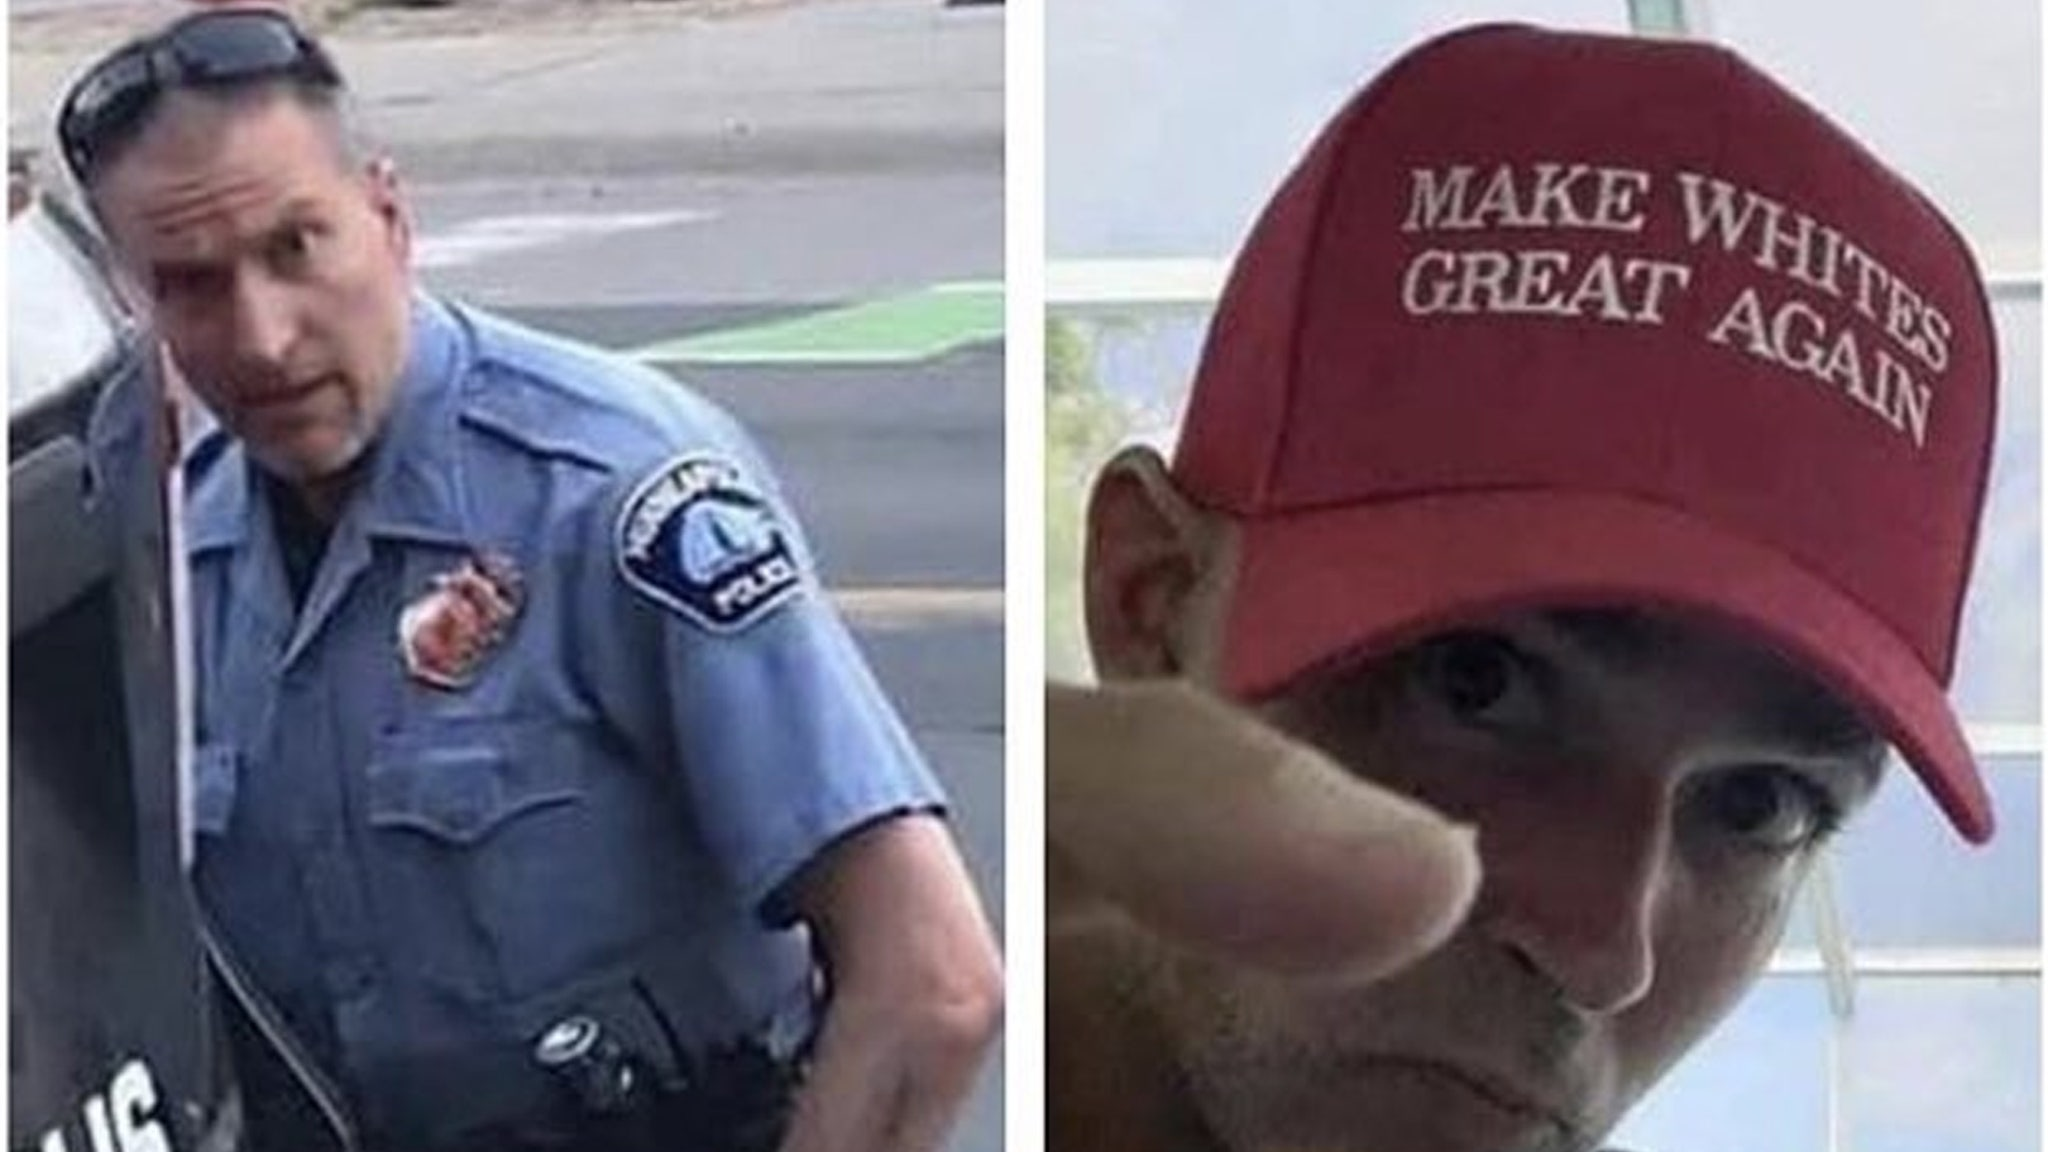 'Make Whites Great Again' Guy Is Not George Floyd Cop, But ...